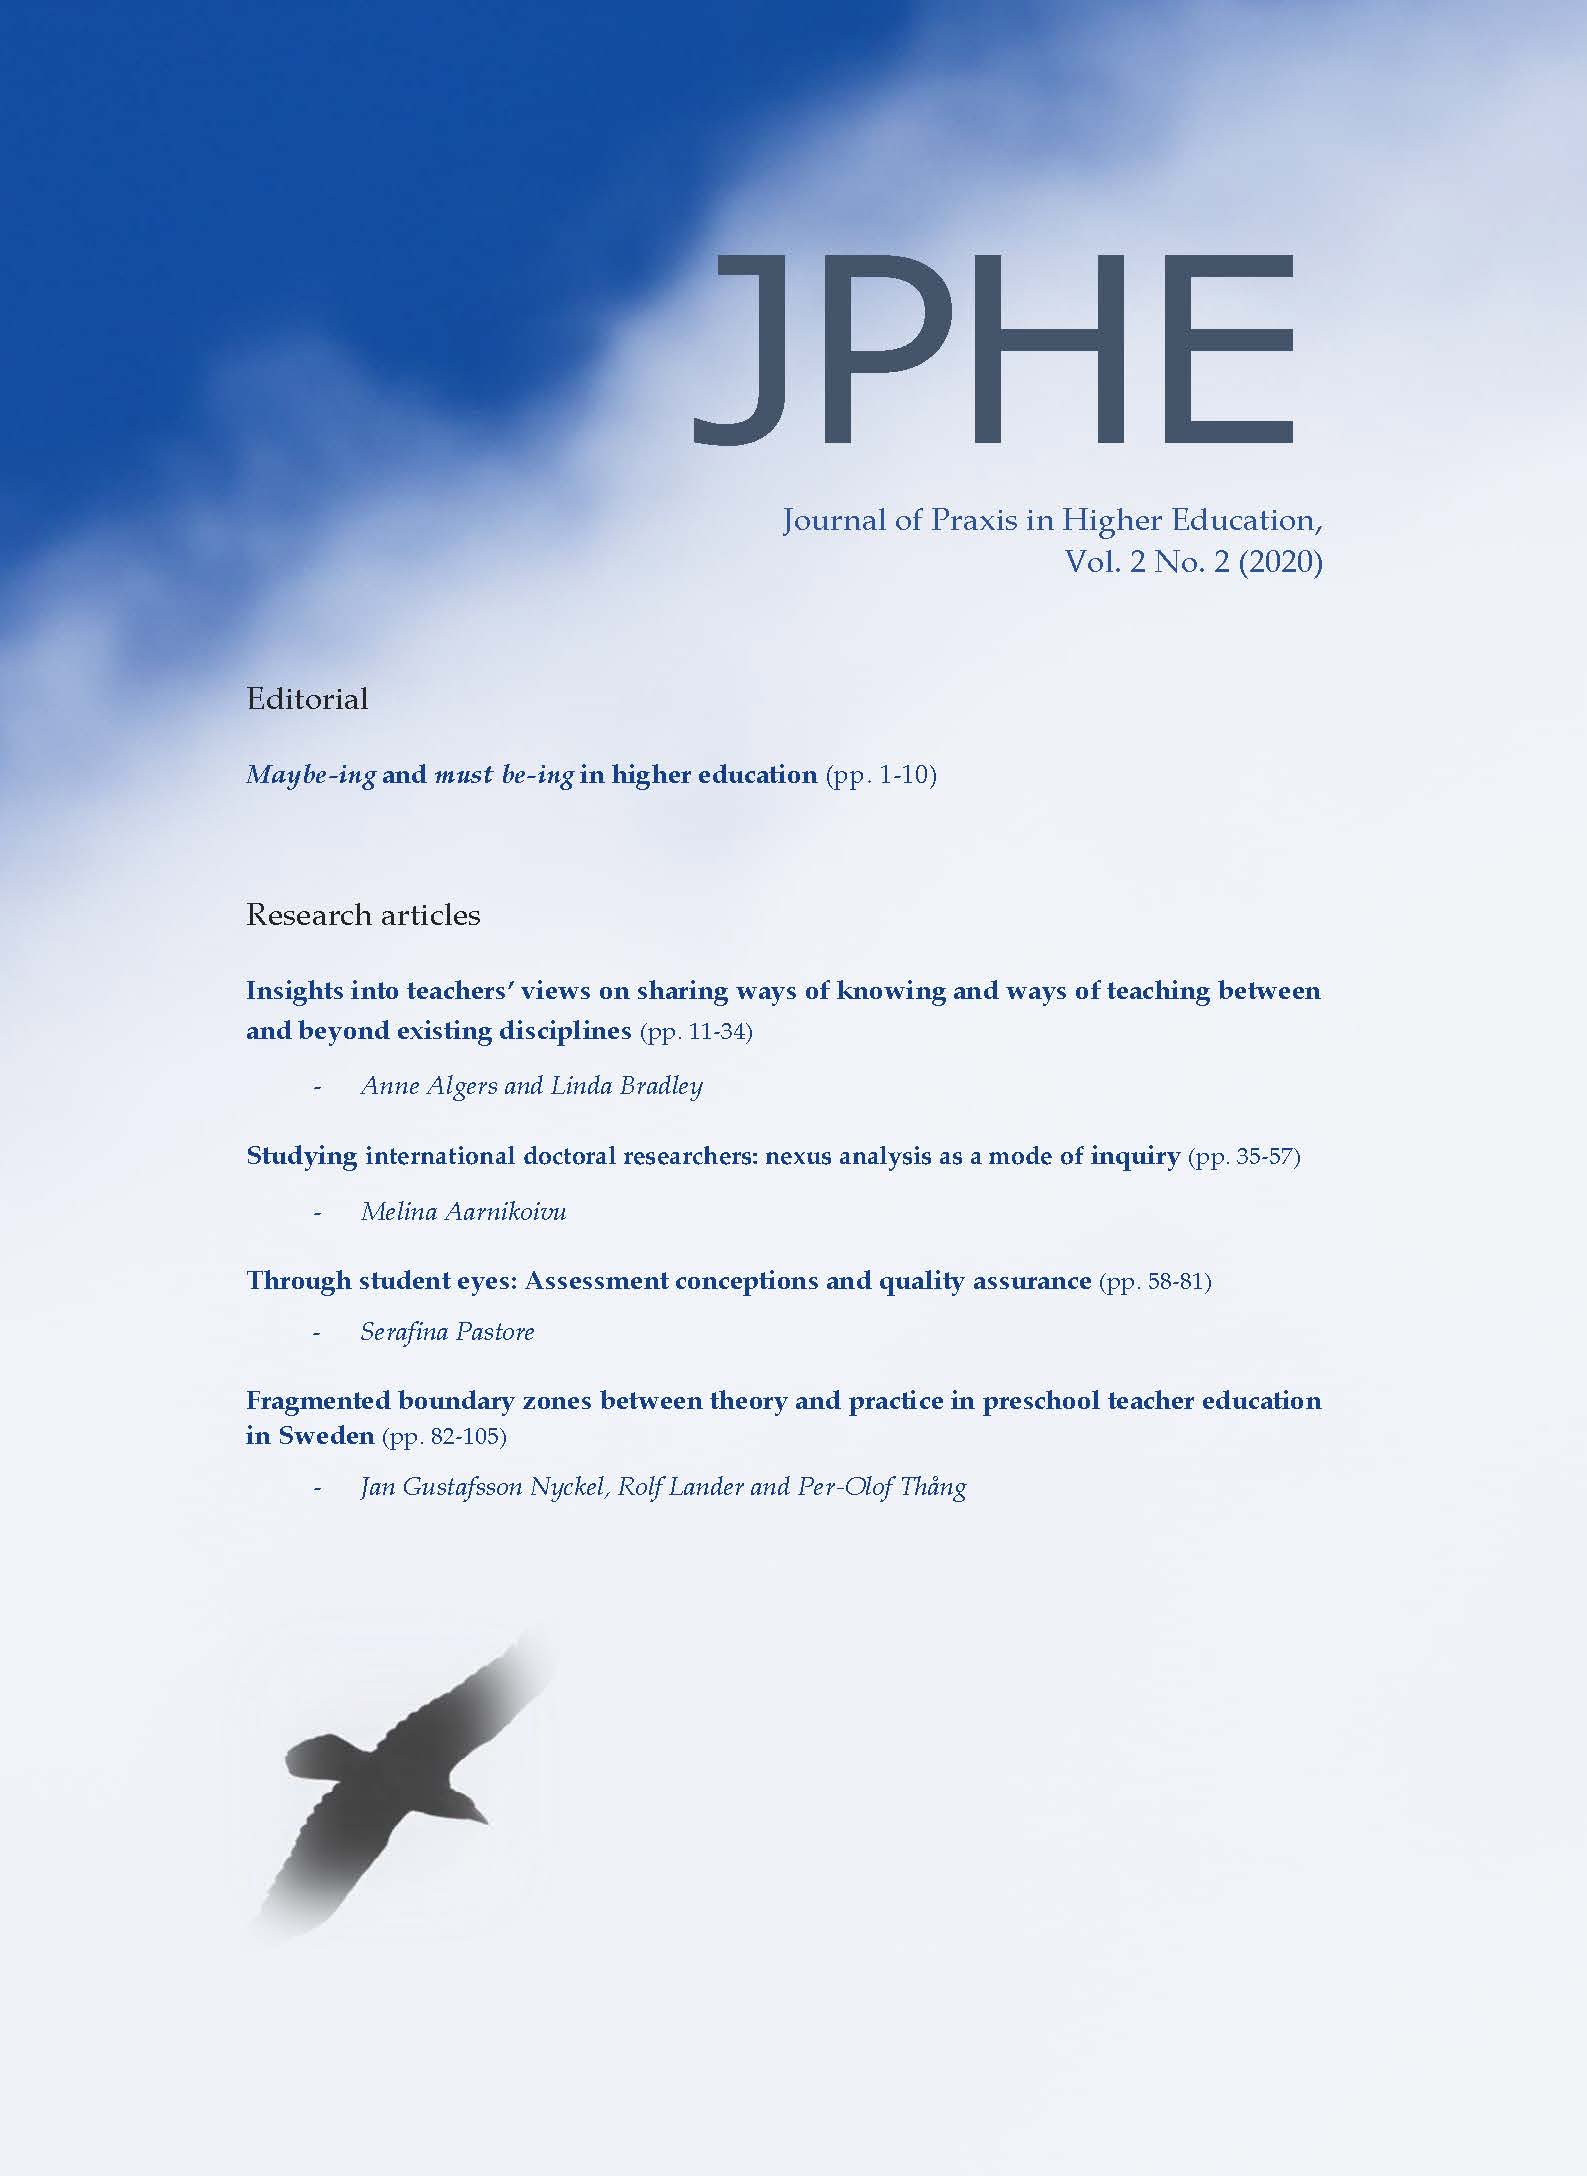 View Vol. 2 No. 2 (2020): Journal of Praxis in Higher Education